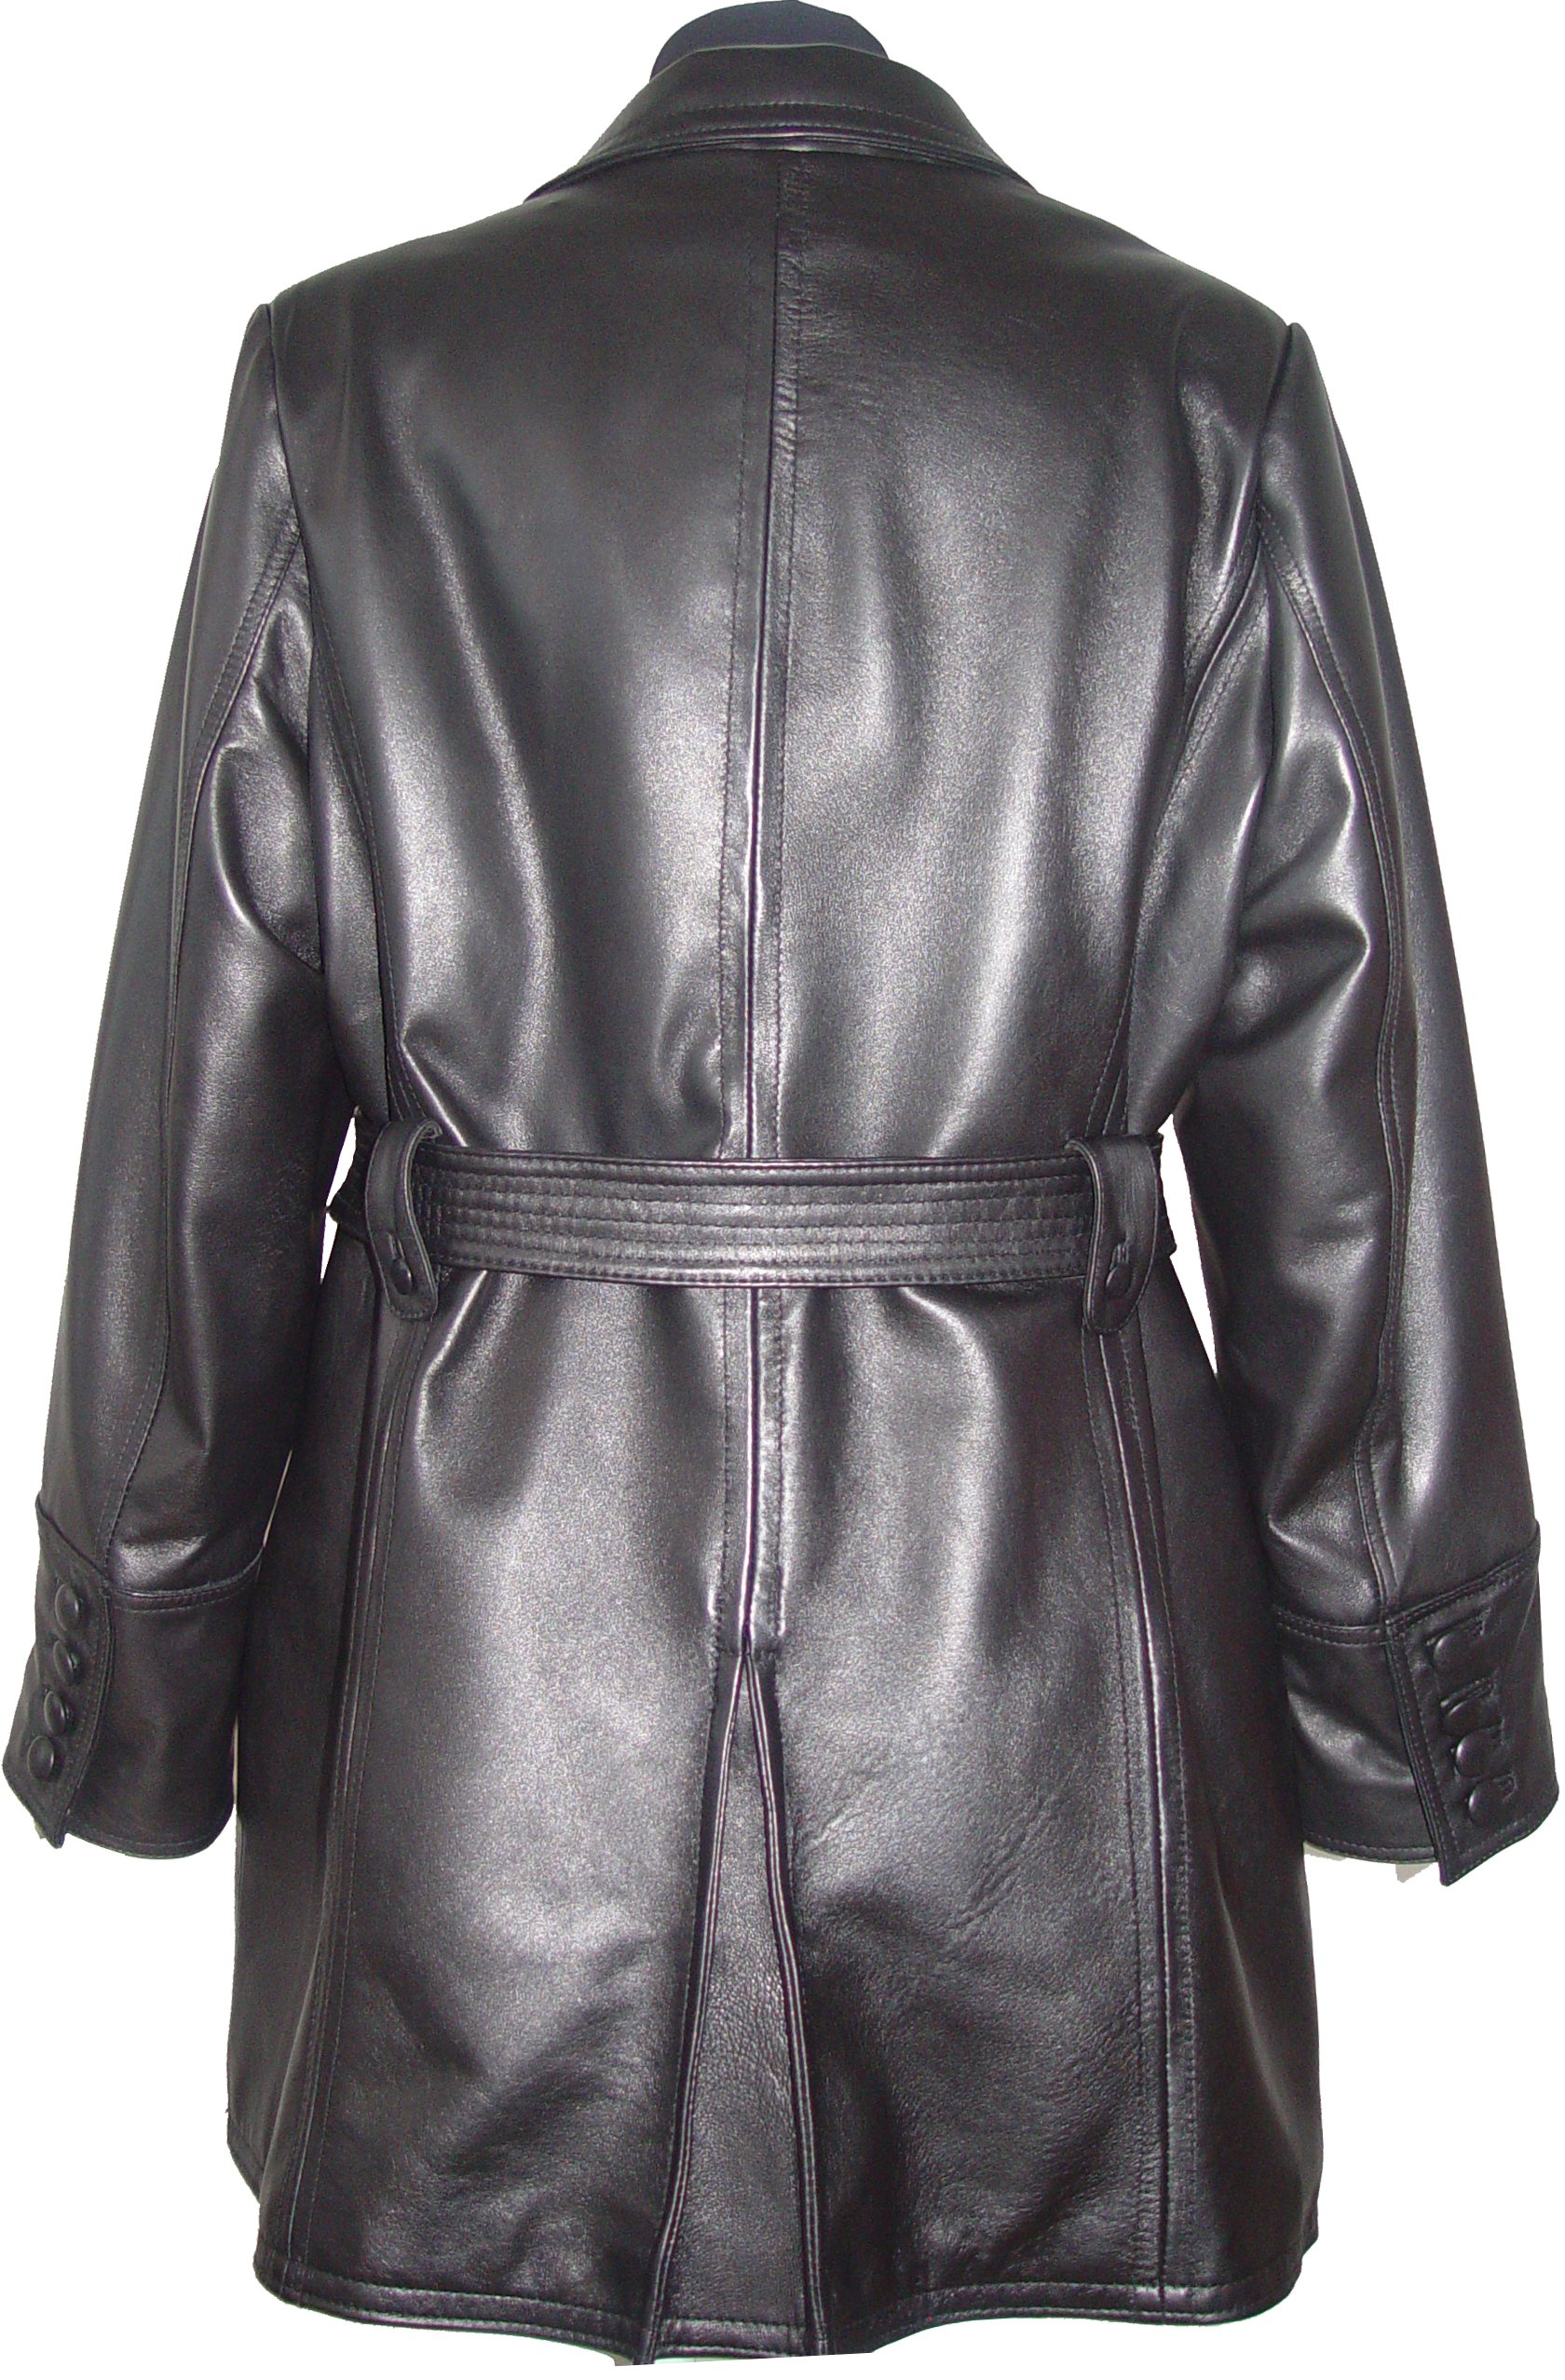 Paccilo 5006 Classic Leather Trench Coats Womens Business Clothing Soft Lamb by Paccilo (Image #5)